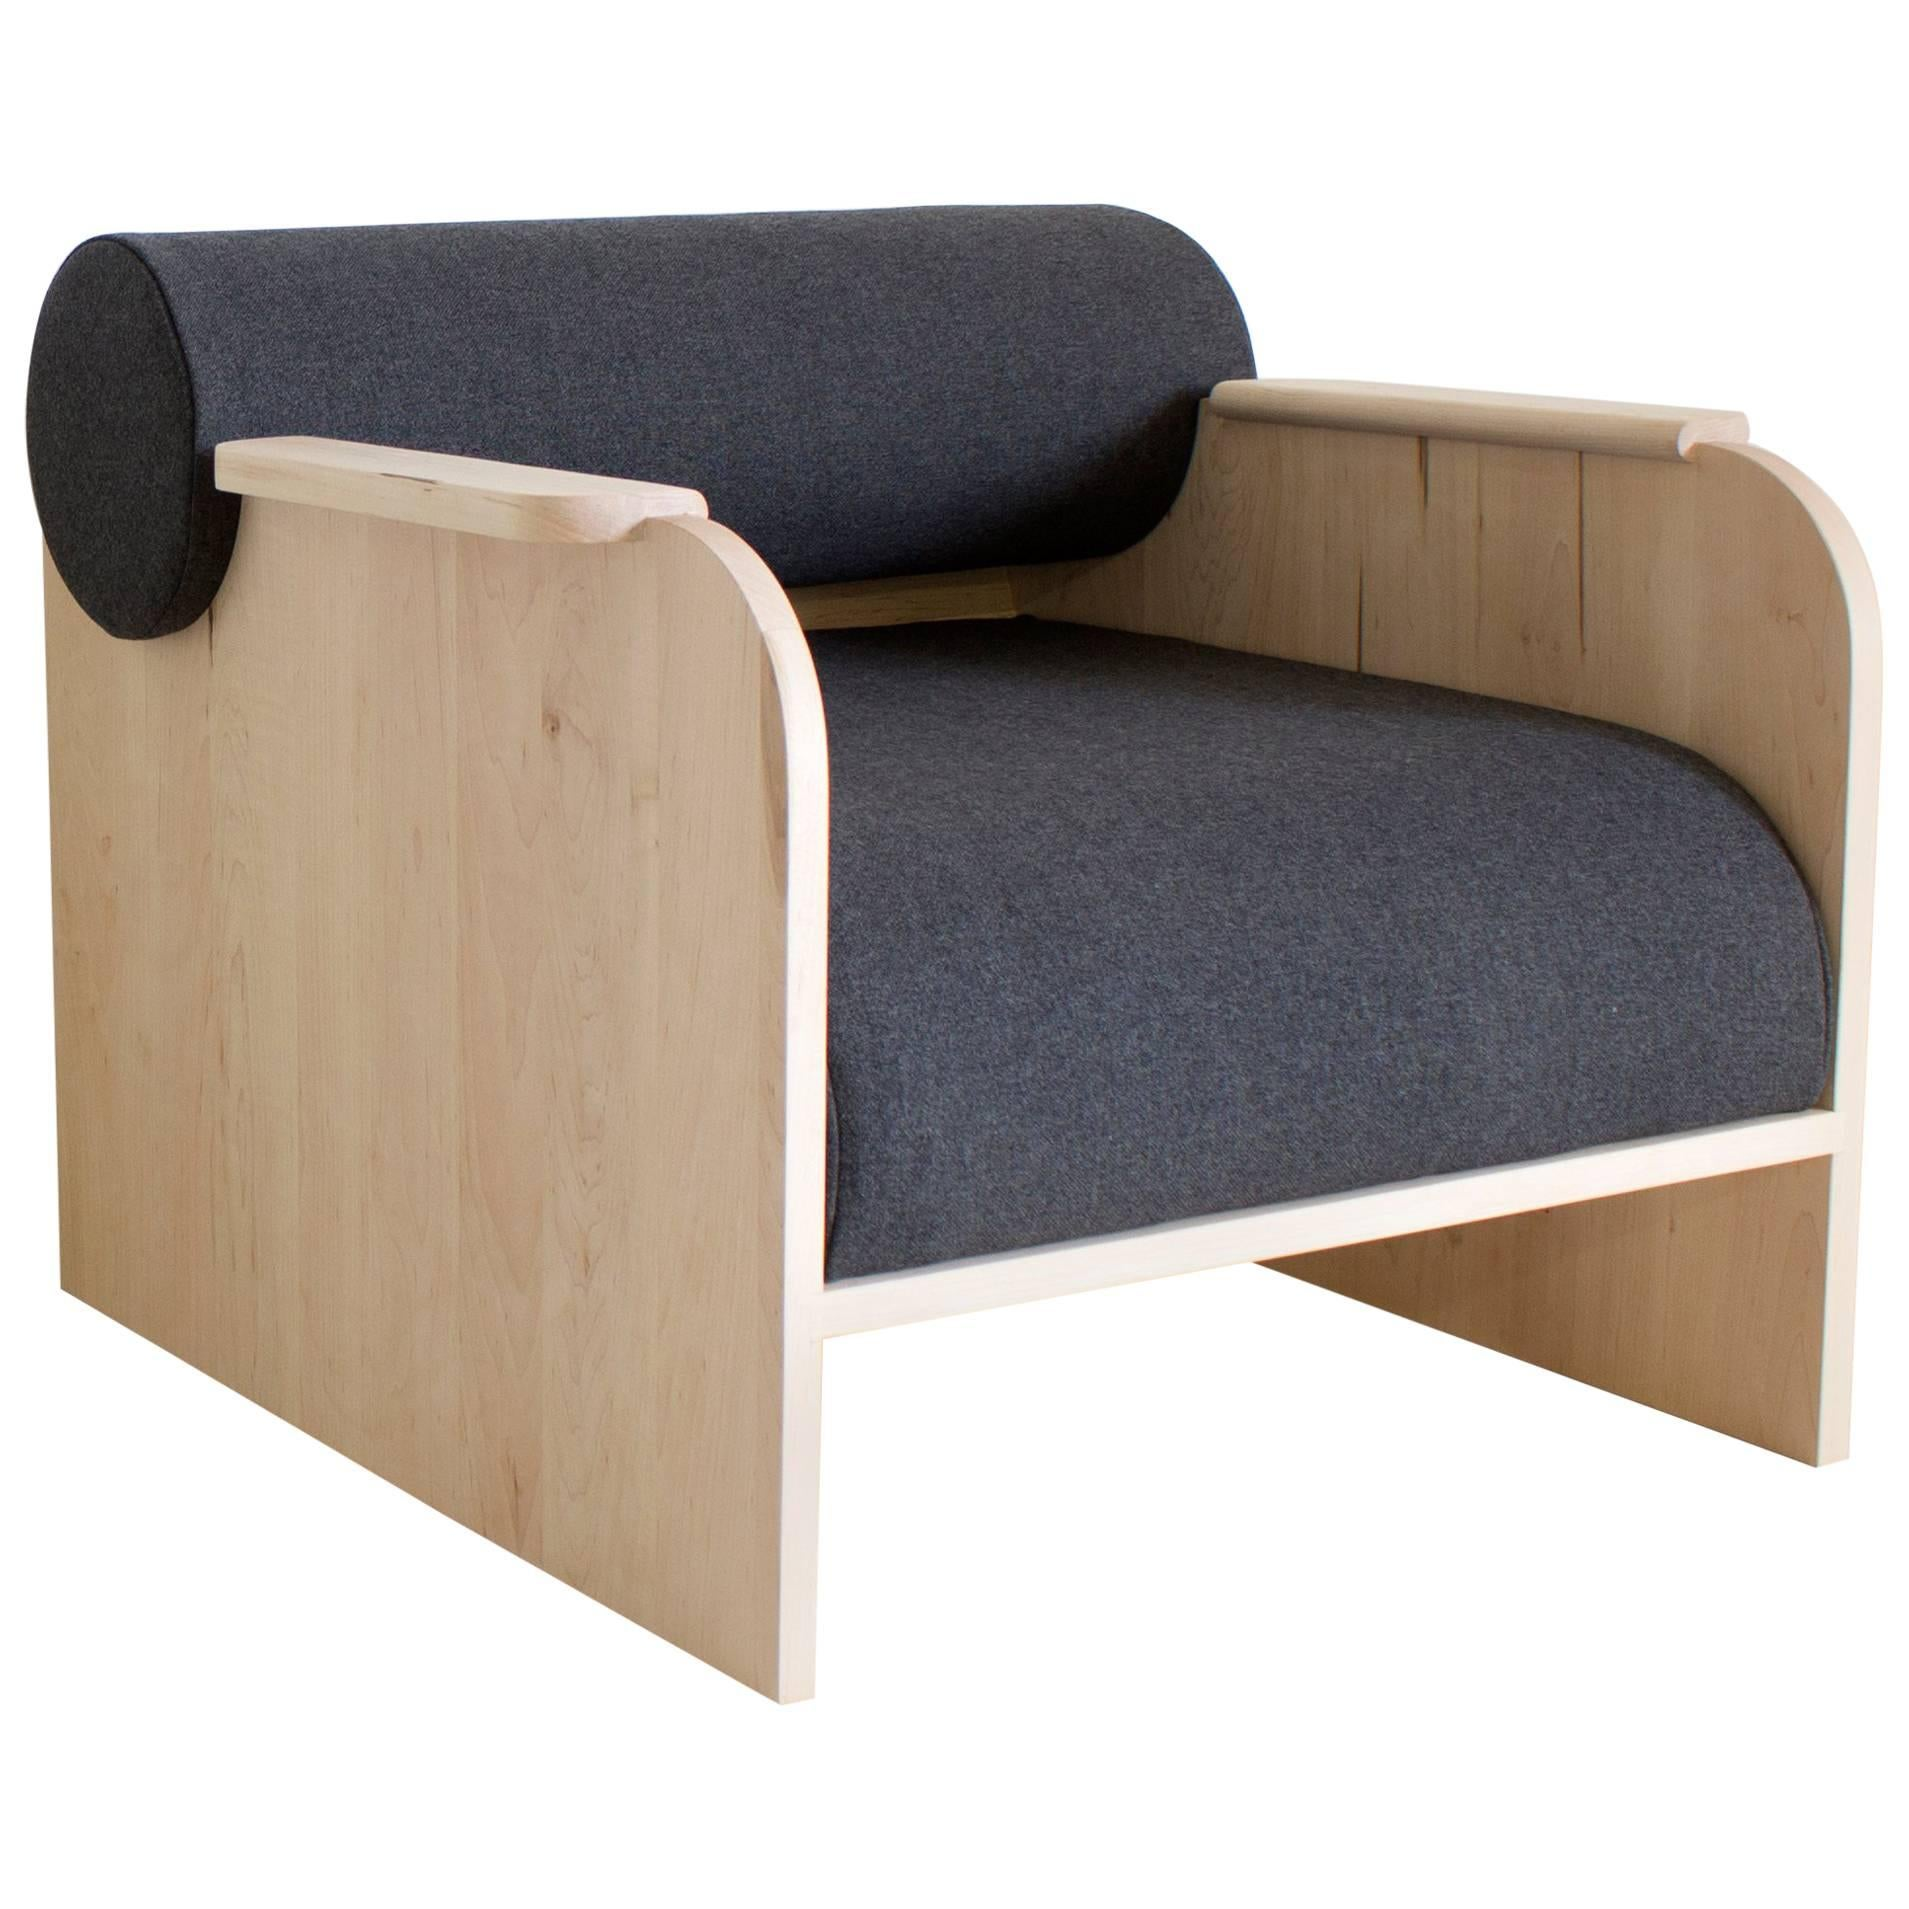 June Lounge and Club Chair